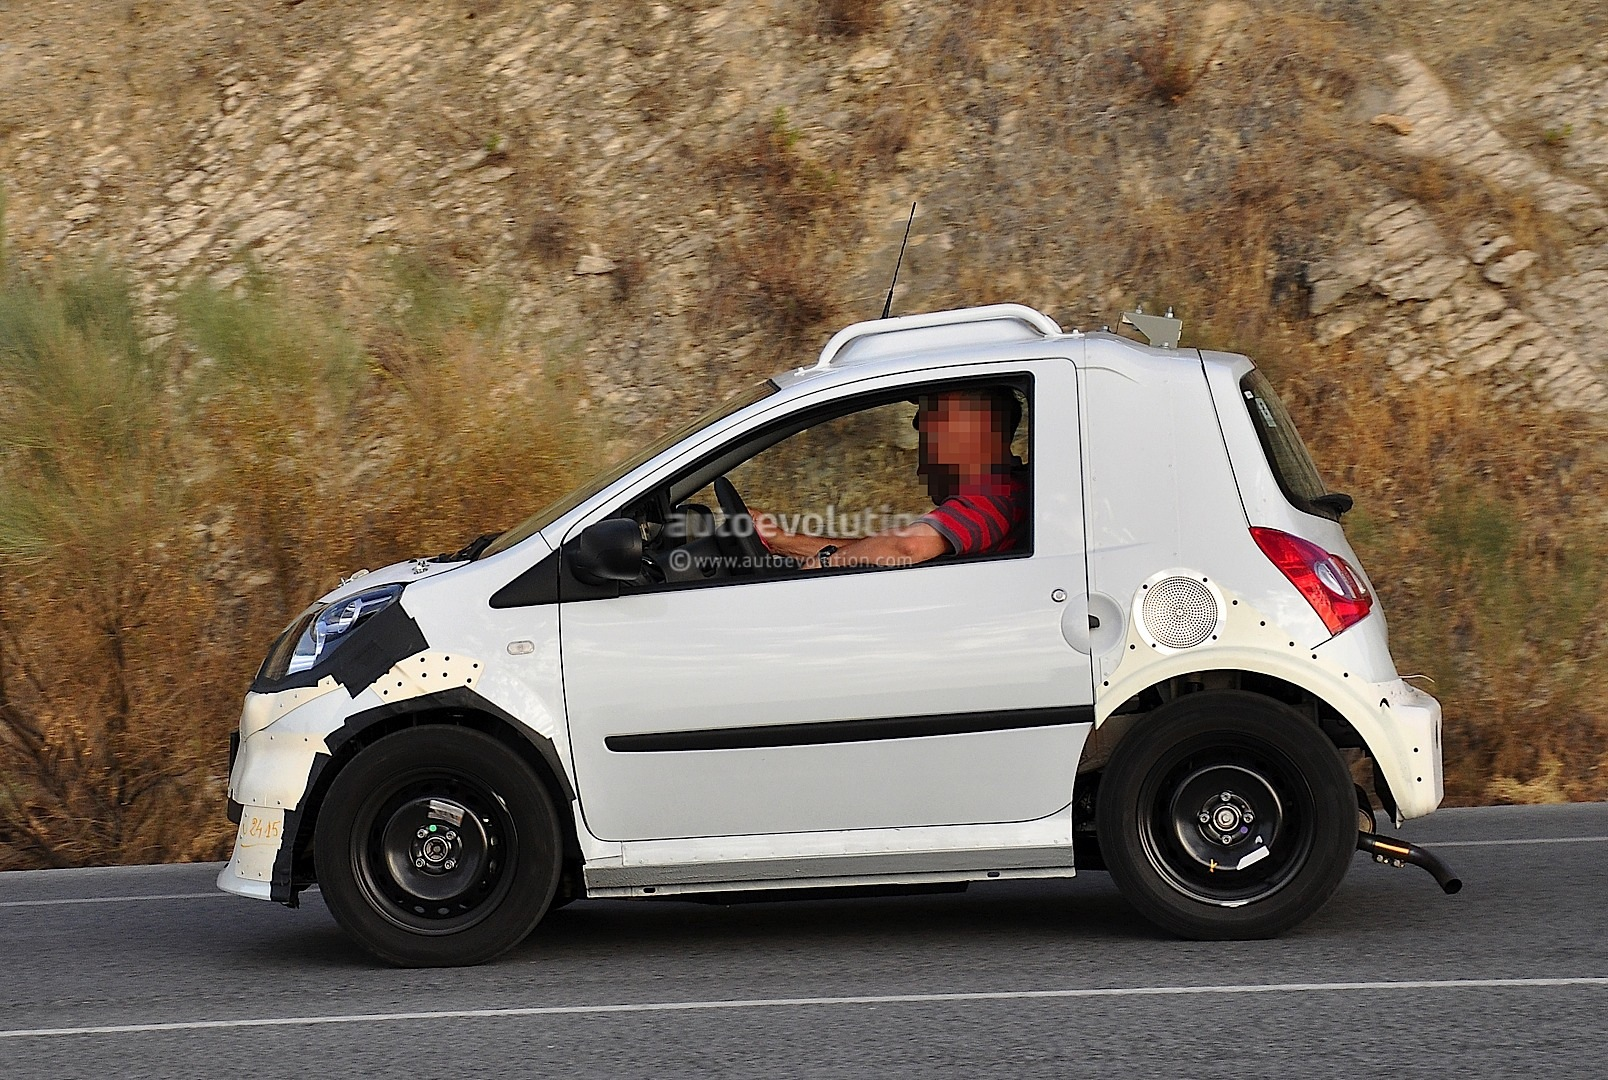 2014 SMART FORTWO - Image #12